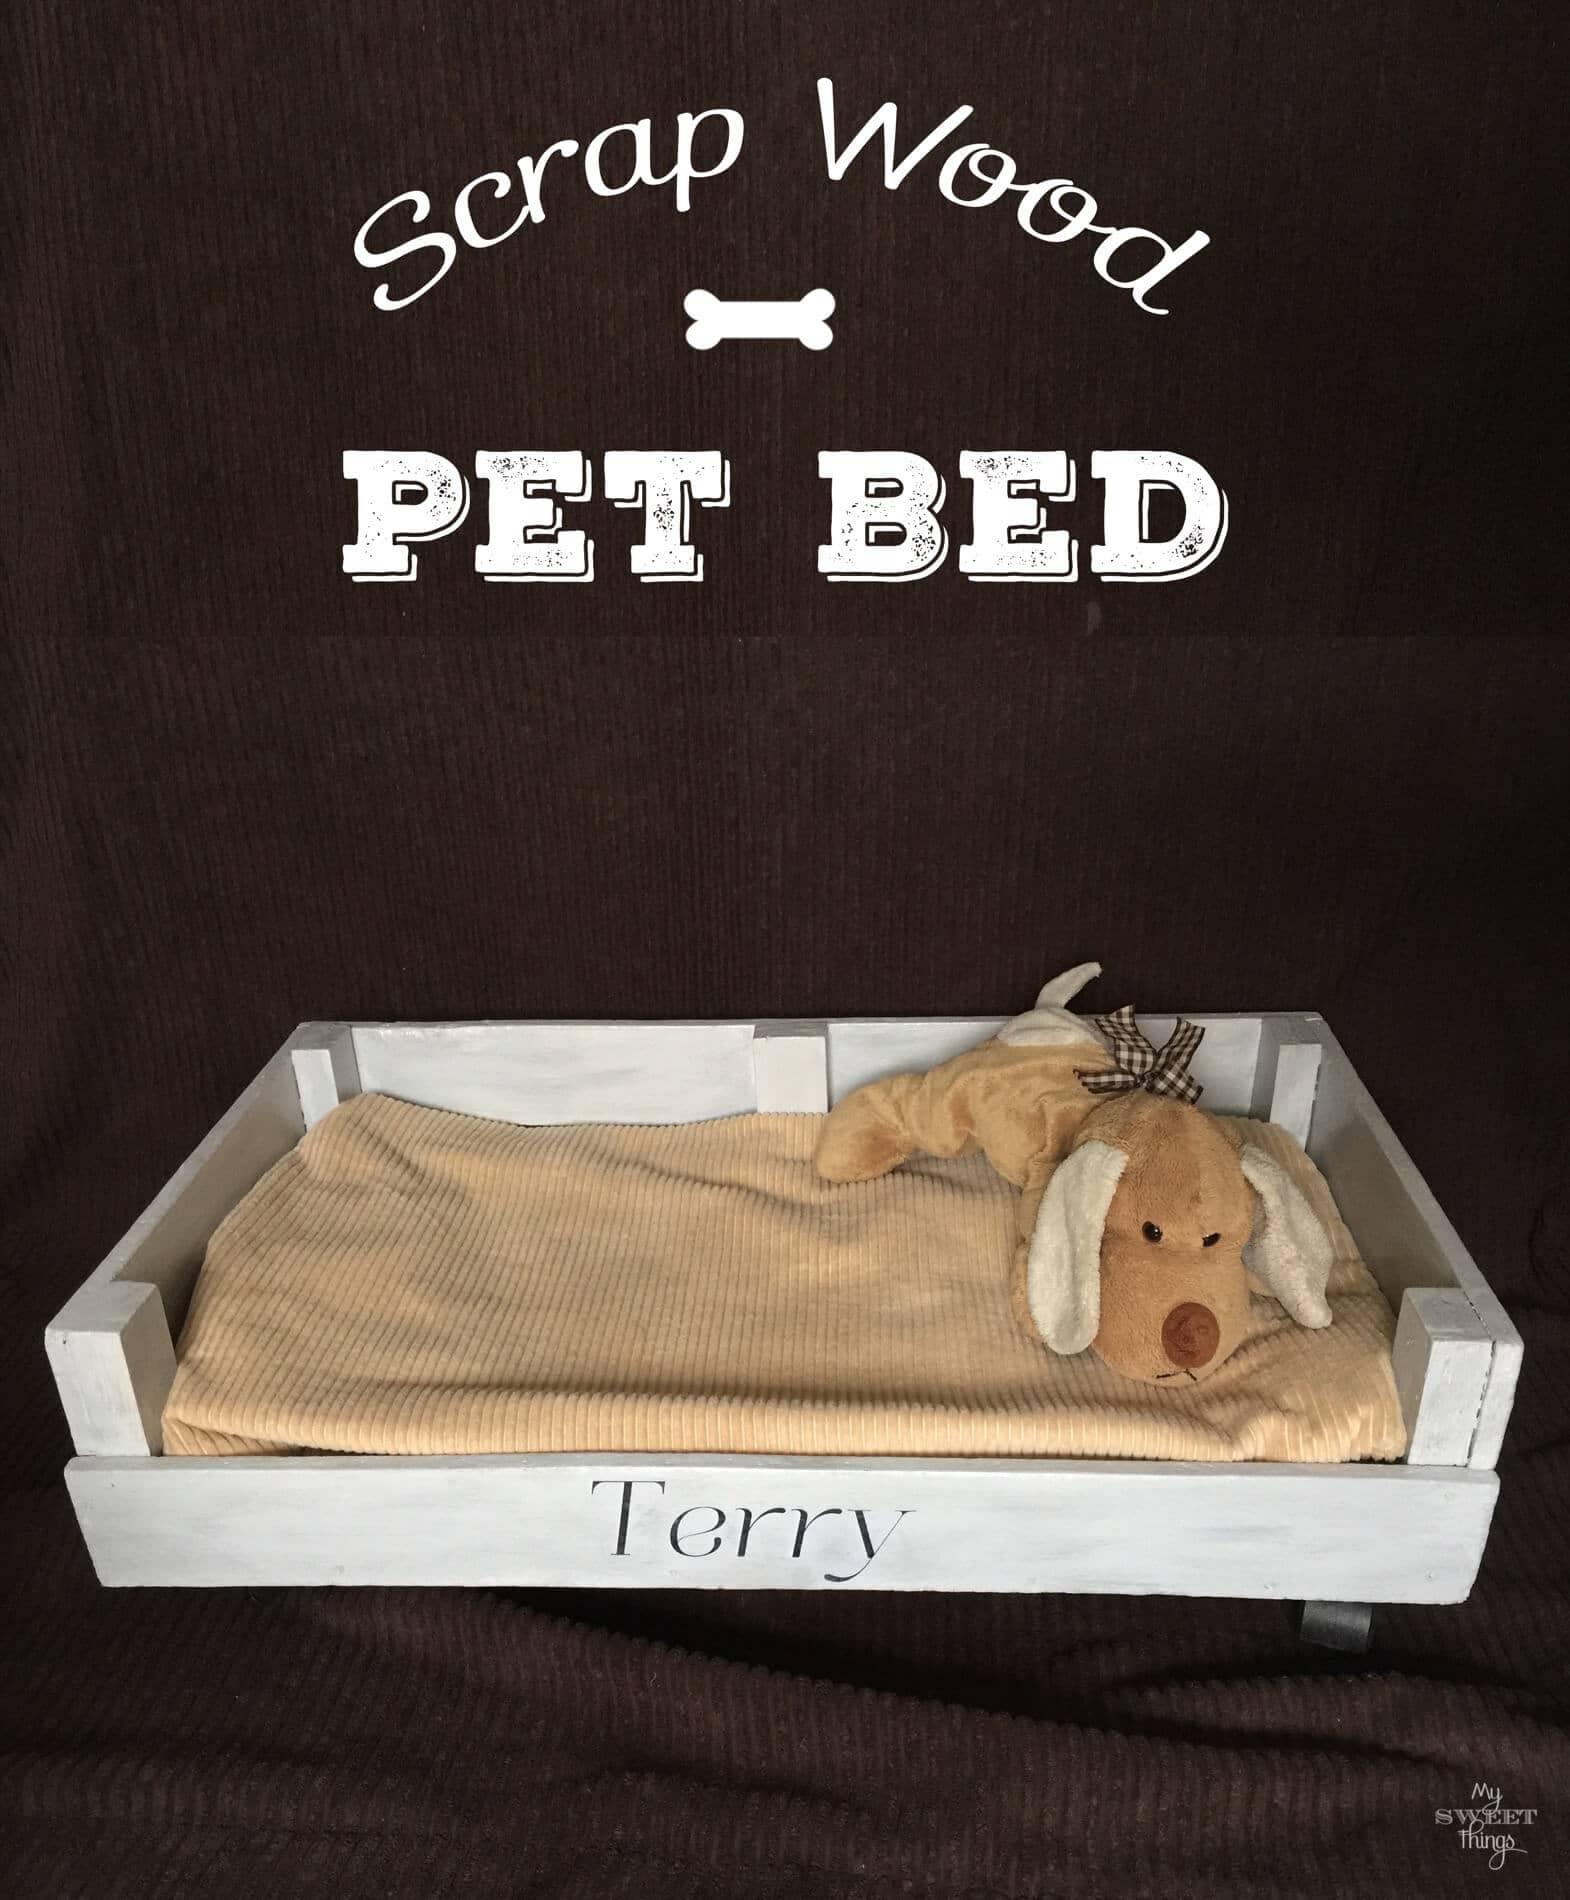 How to make a pet bed out of scrap wood